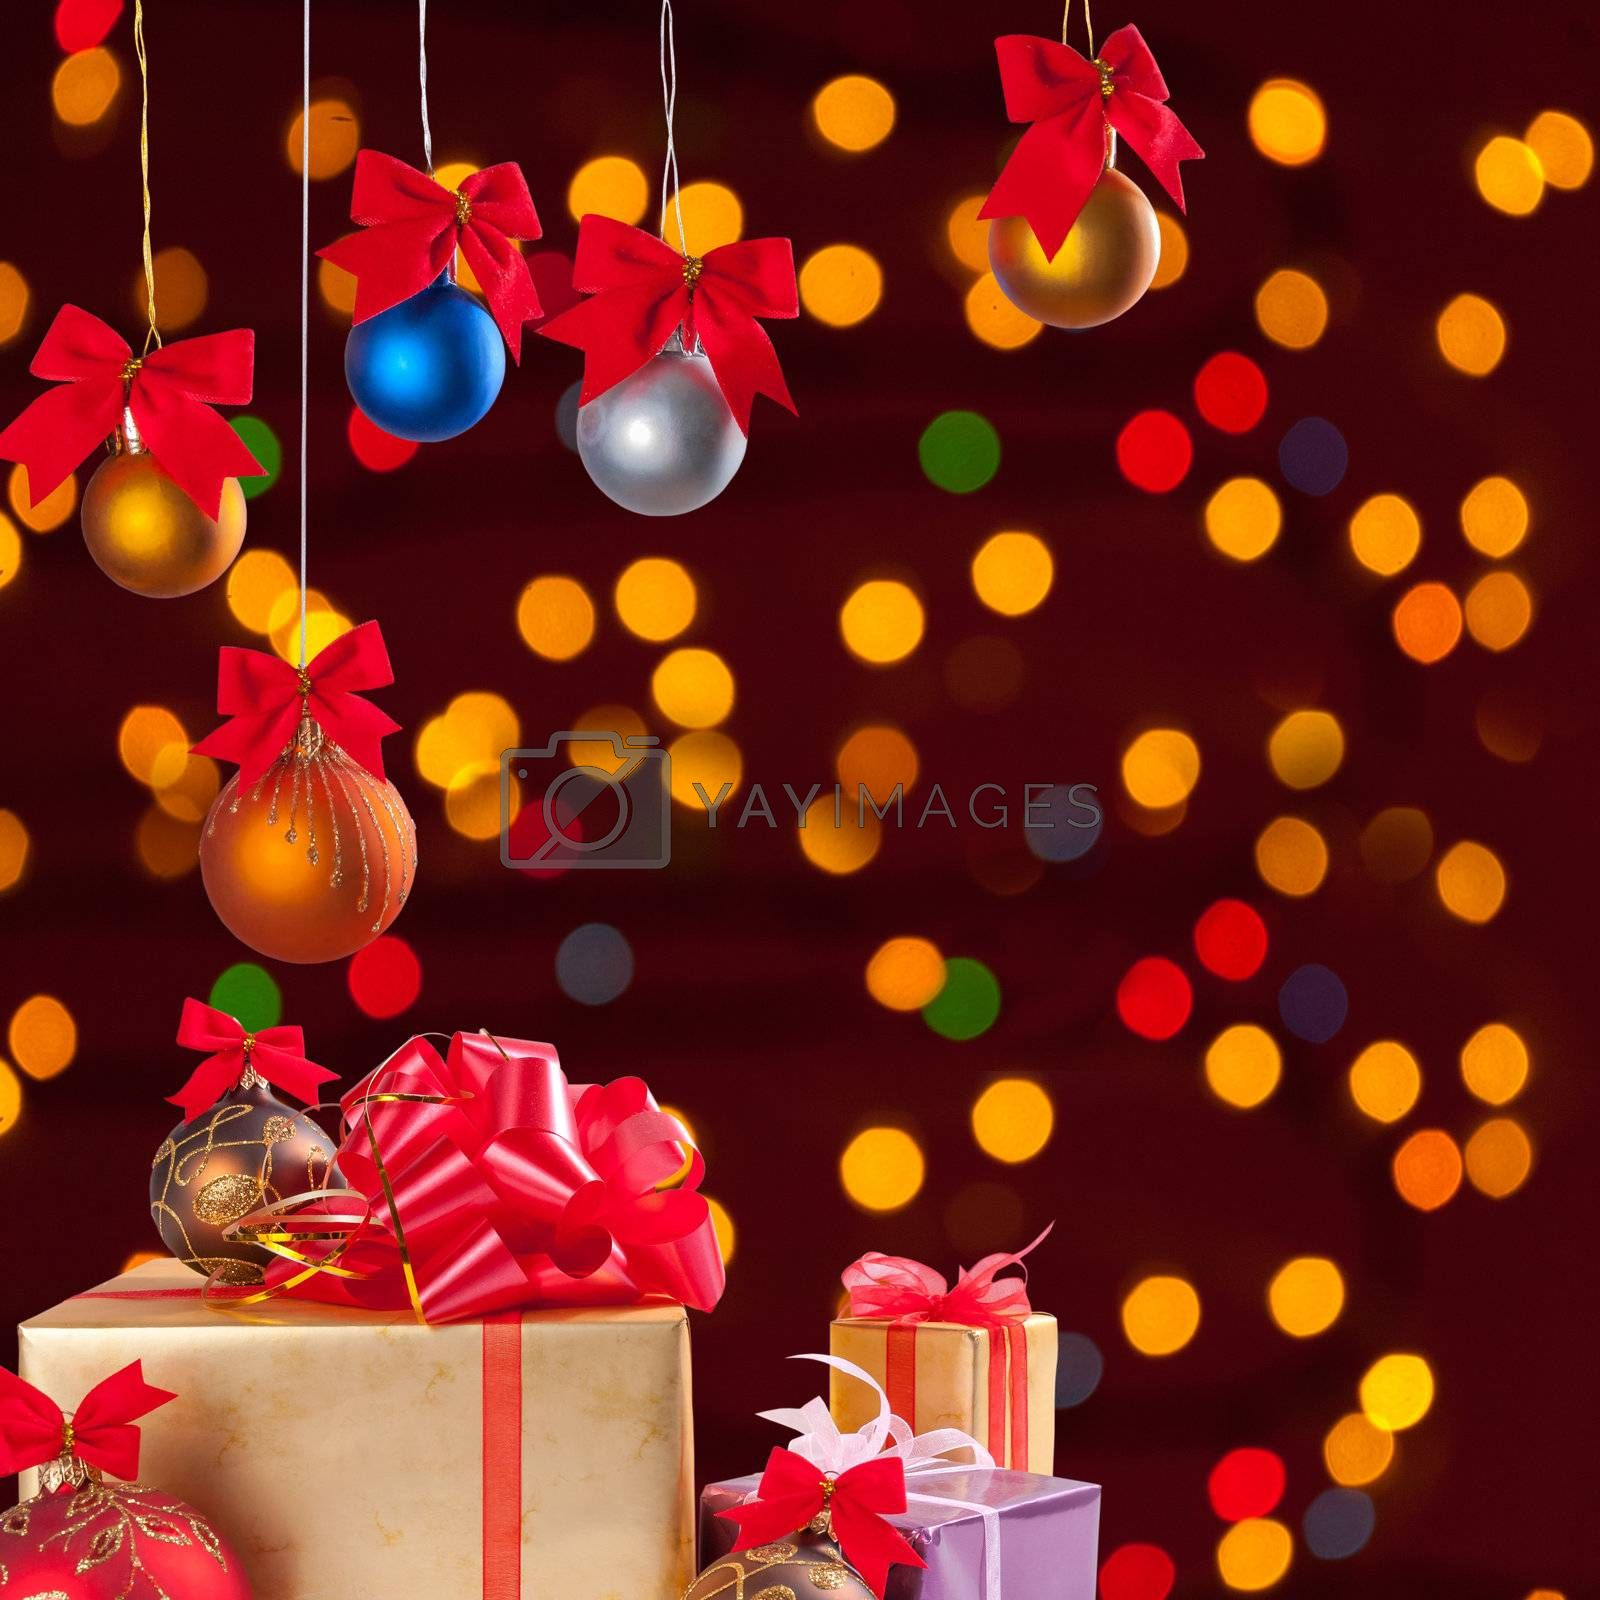 Christmas balls on ribbon and gifts on festive background